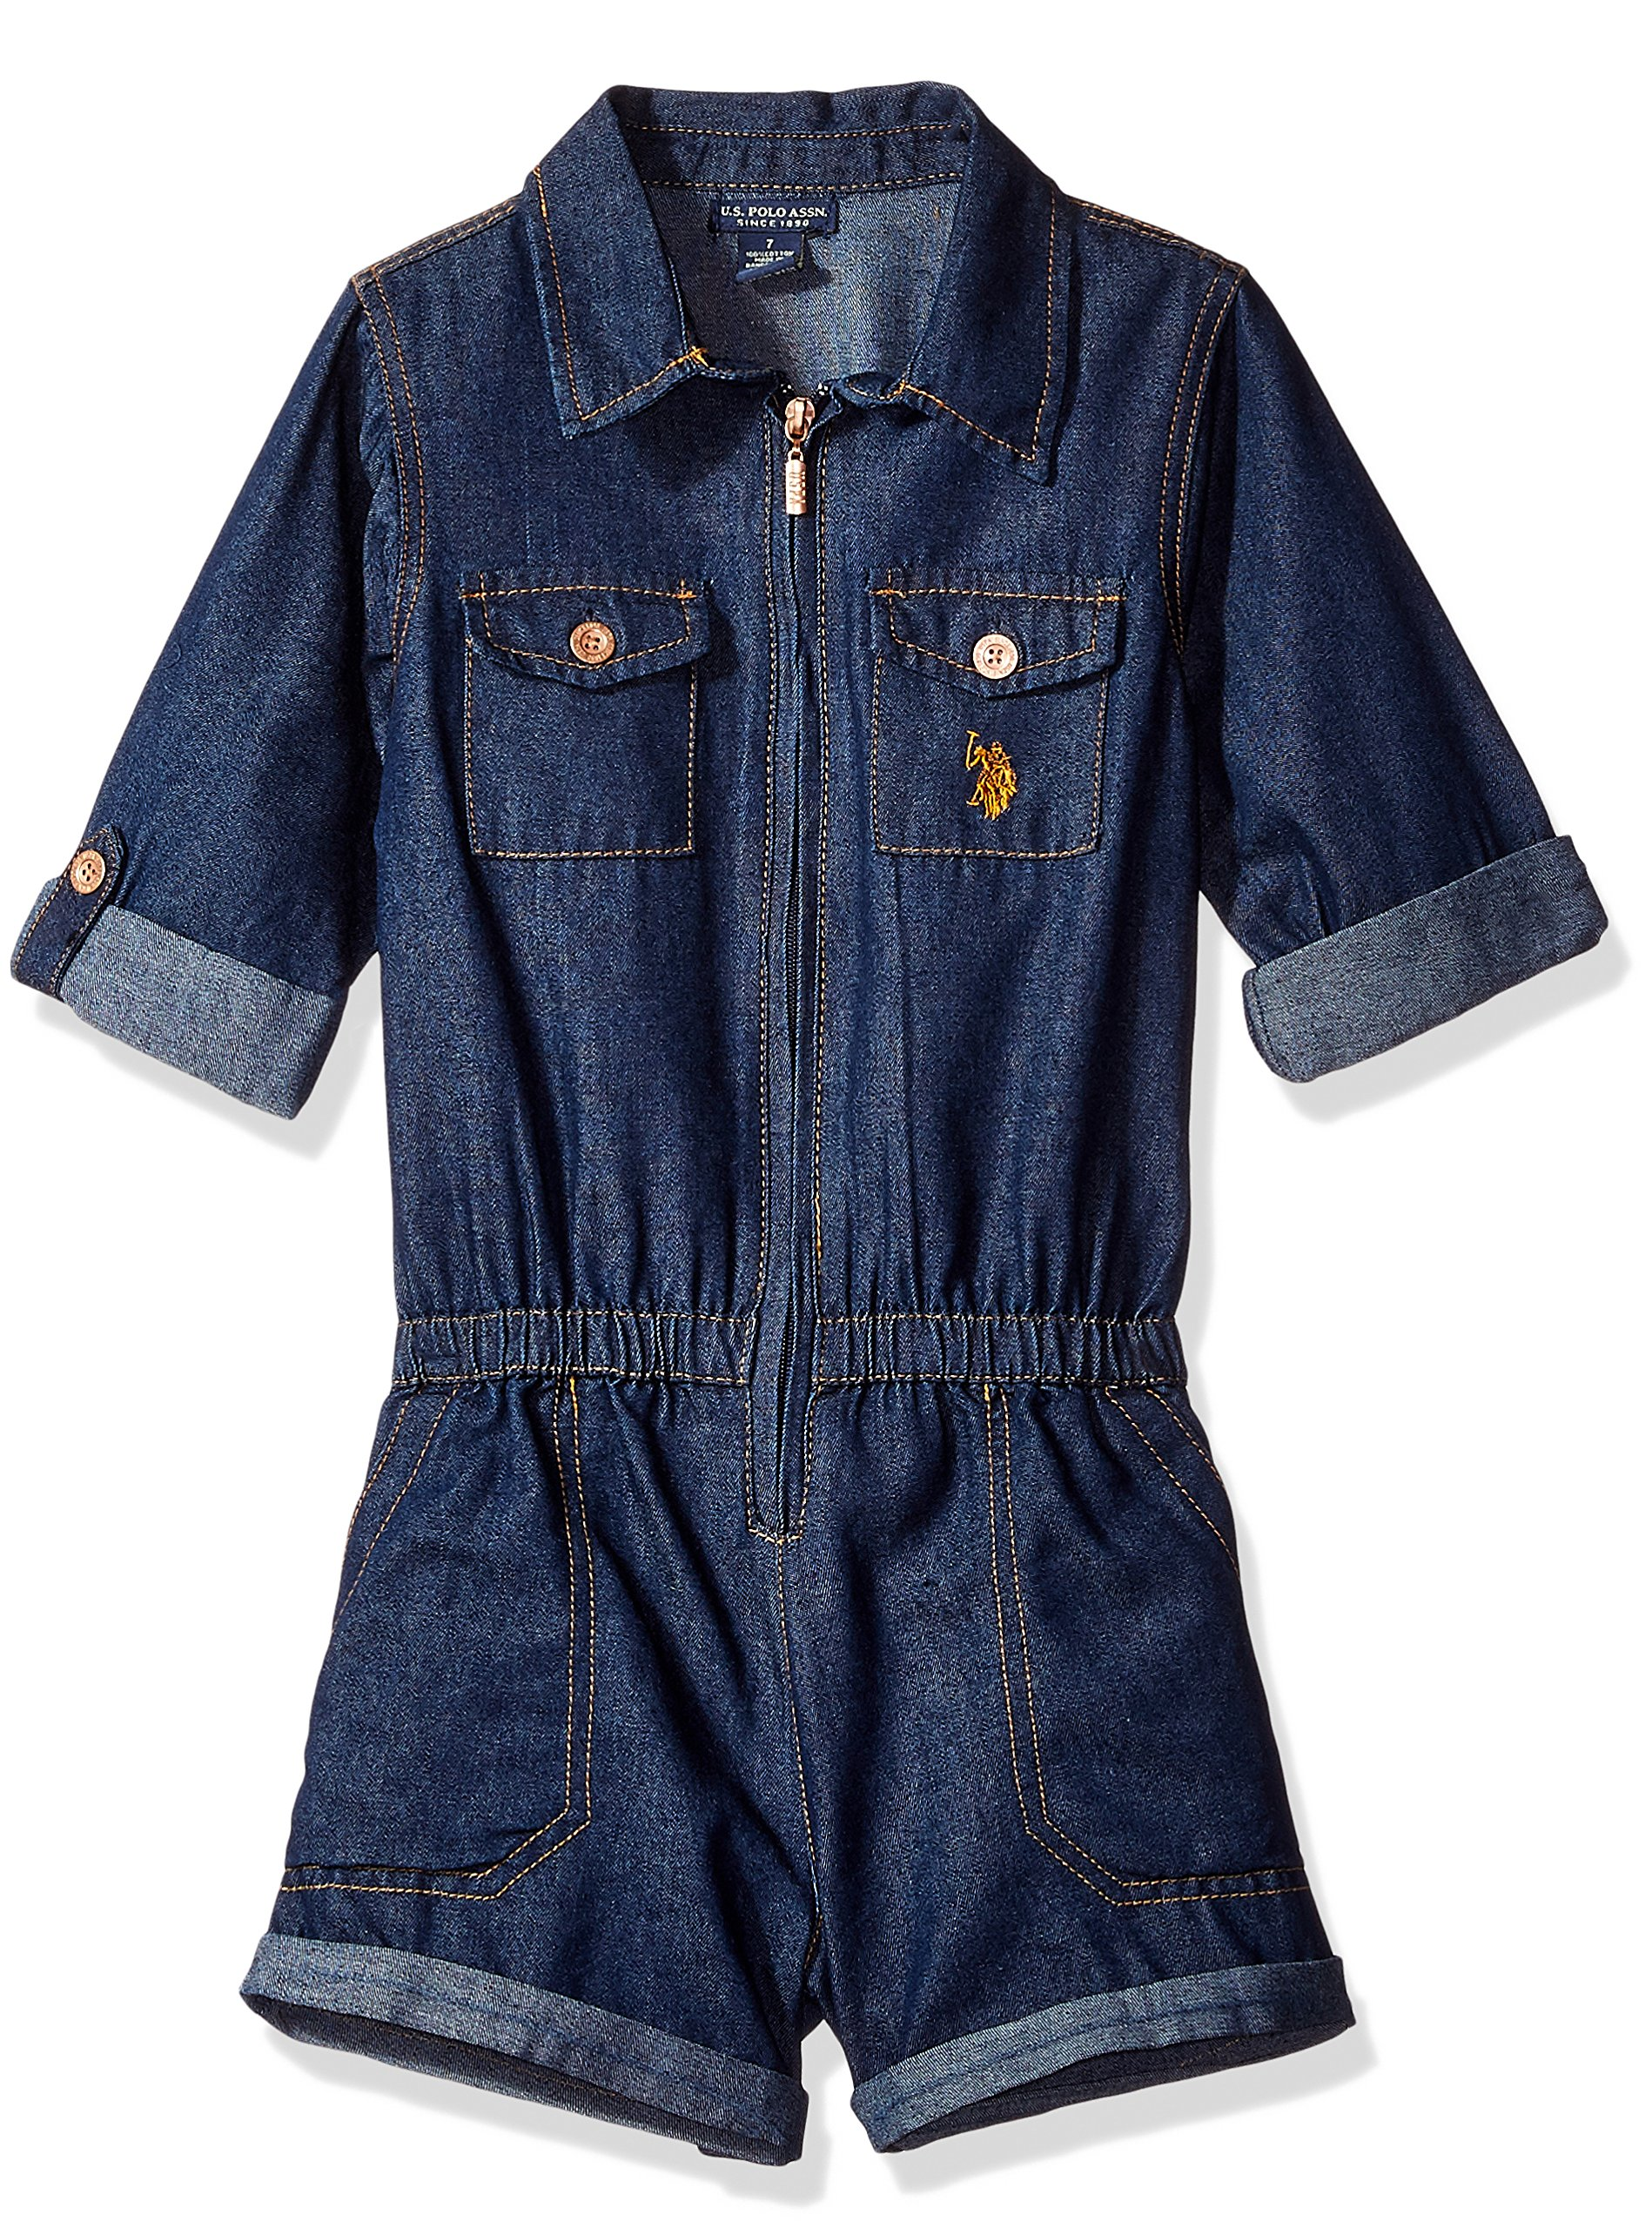 U.S. Polo Assn. Big Girls' Dark Blue Denim Romper, Dark Wash, 8